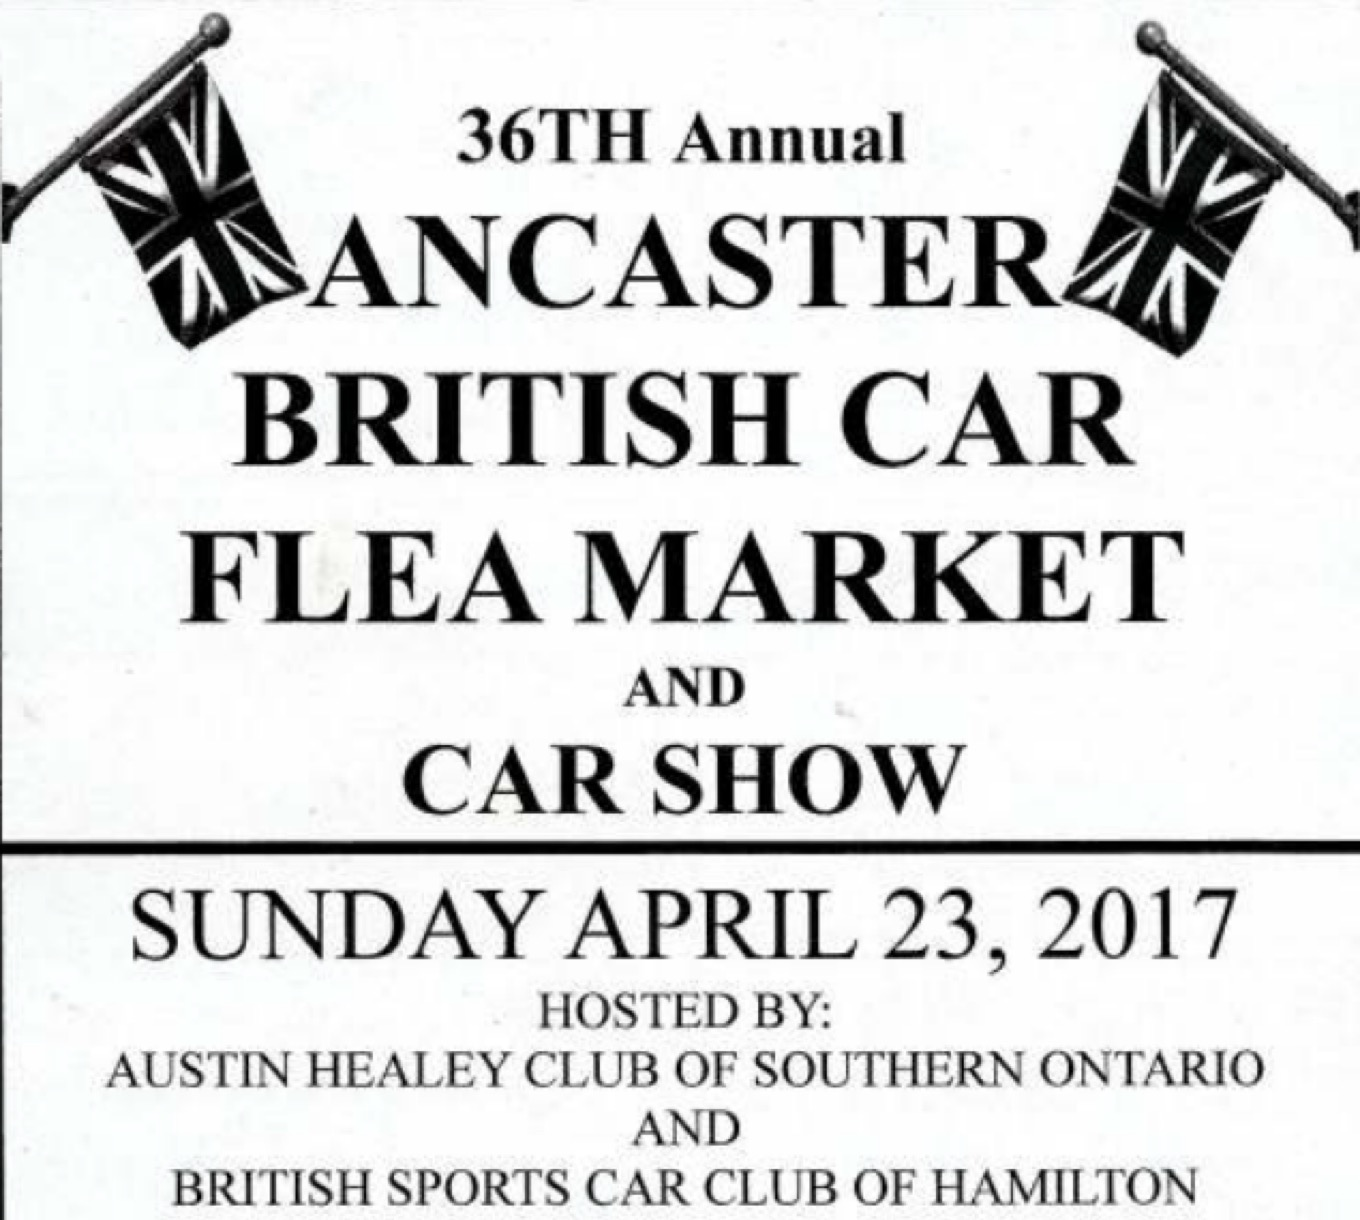 Ancaster British Car Flea Market and Car Show